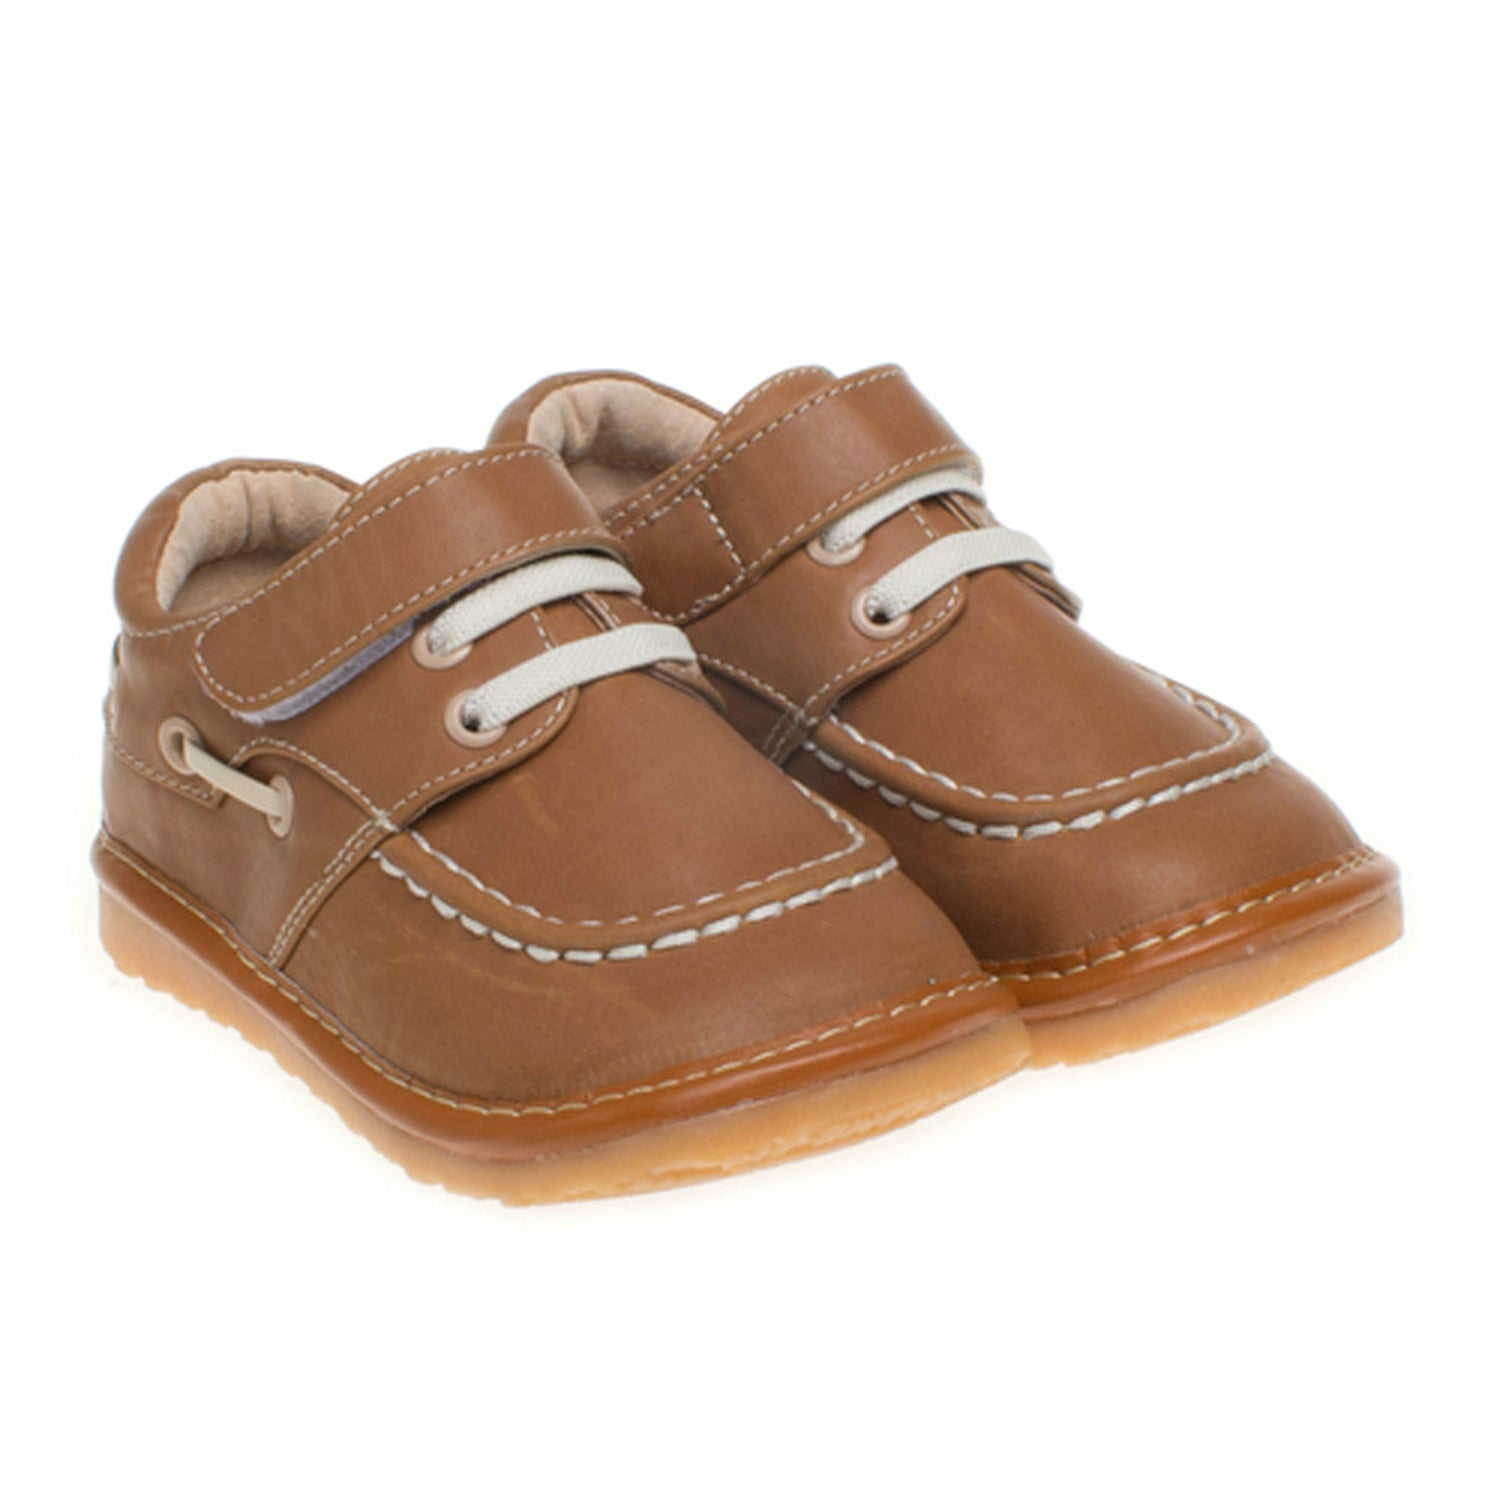 Little Blue Lamb Toddler SQ Series Camel Squeaky Shoes